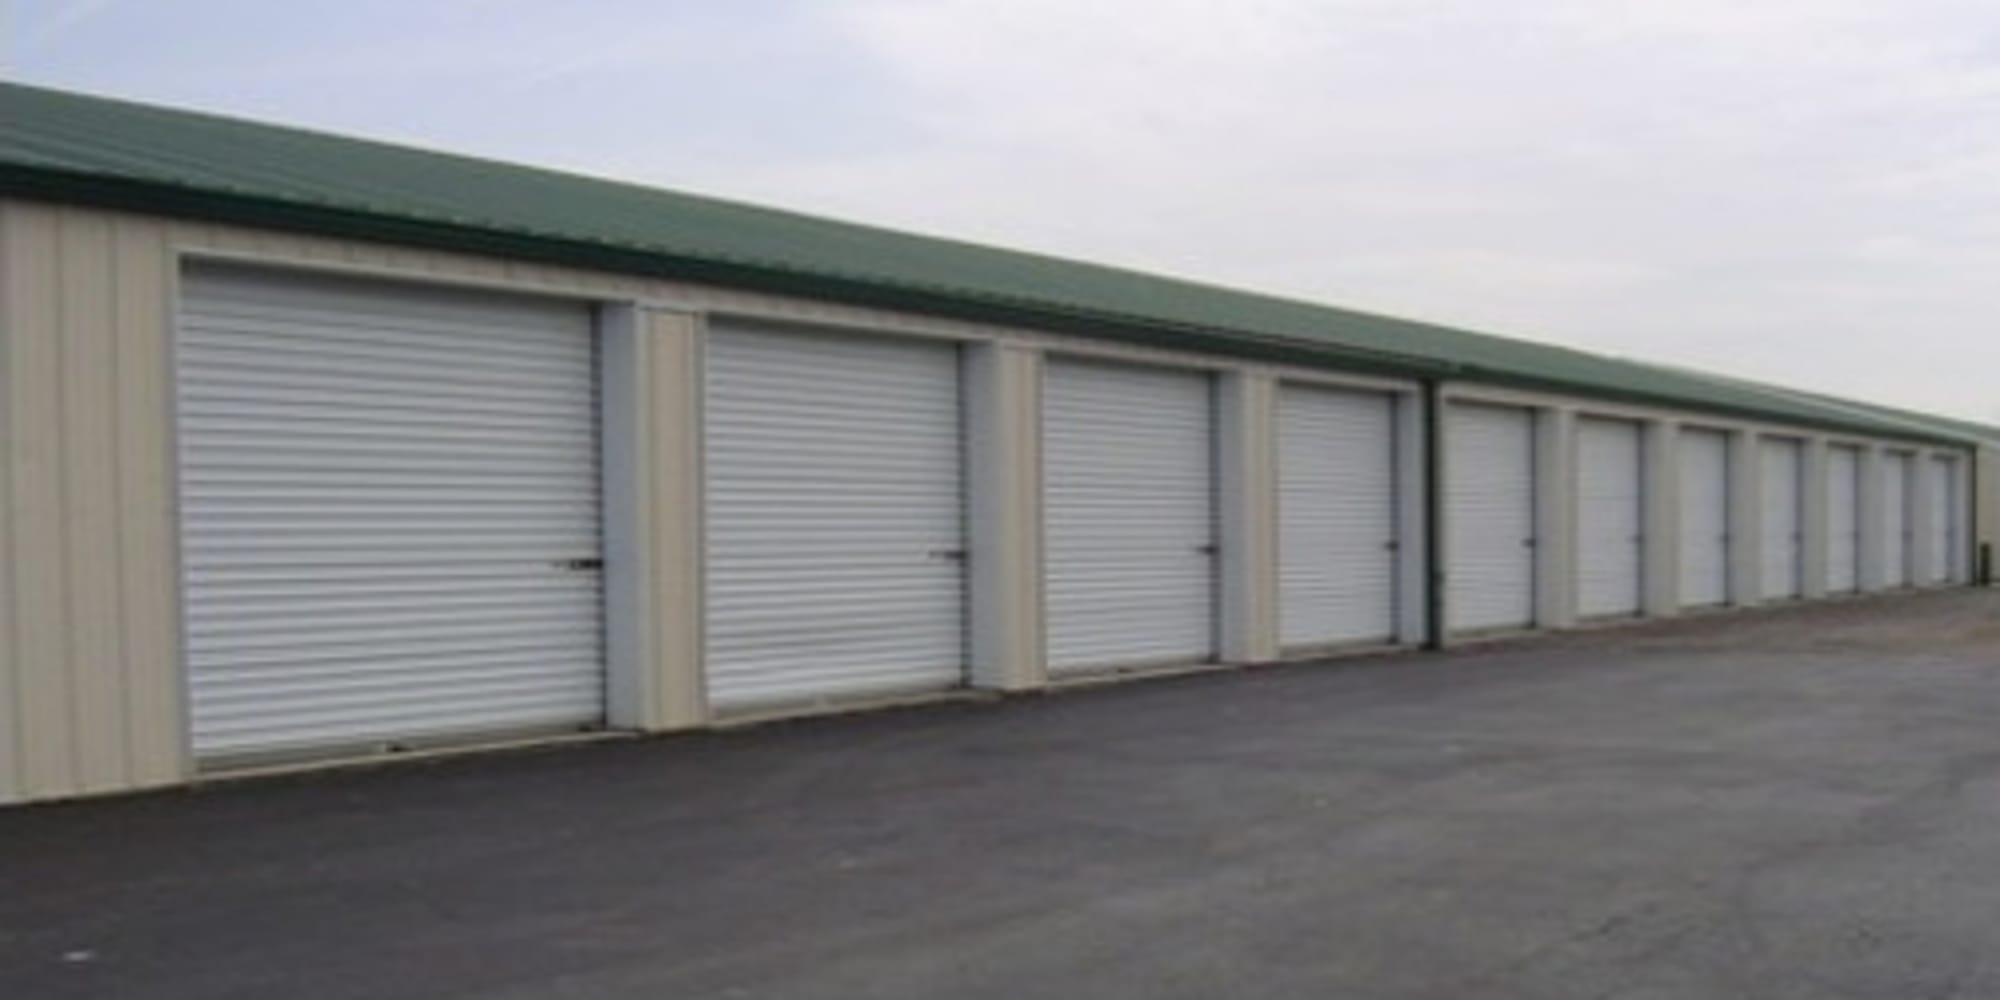 Unit size guide for Broad & York Storage in Pataskala, Ohio